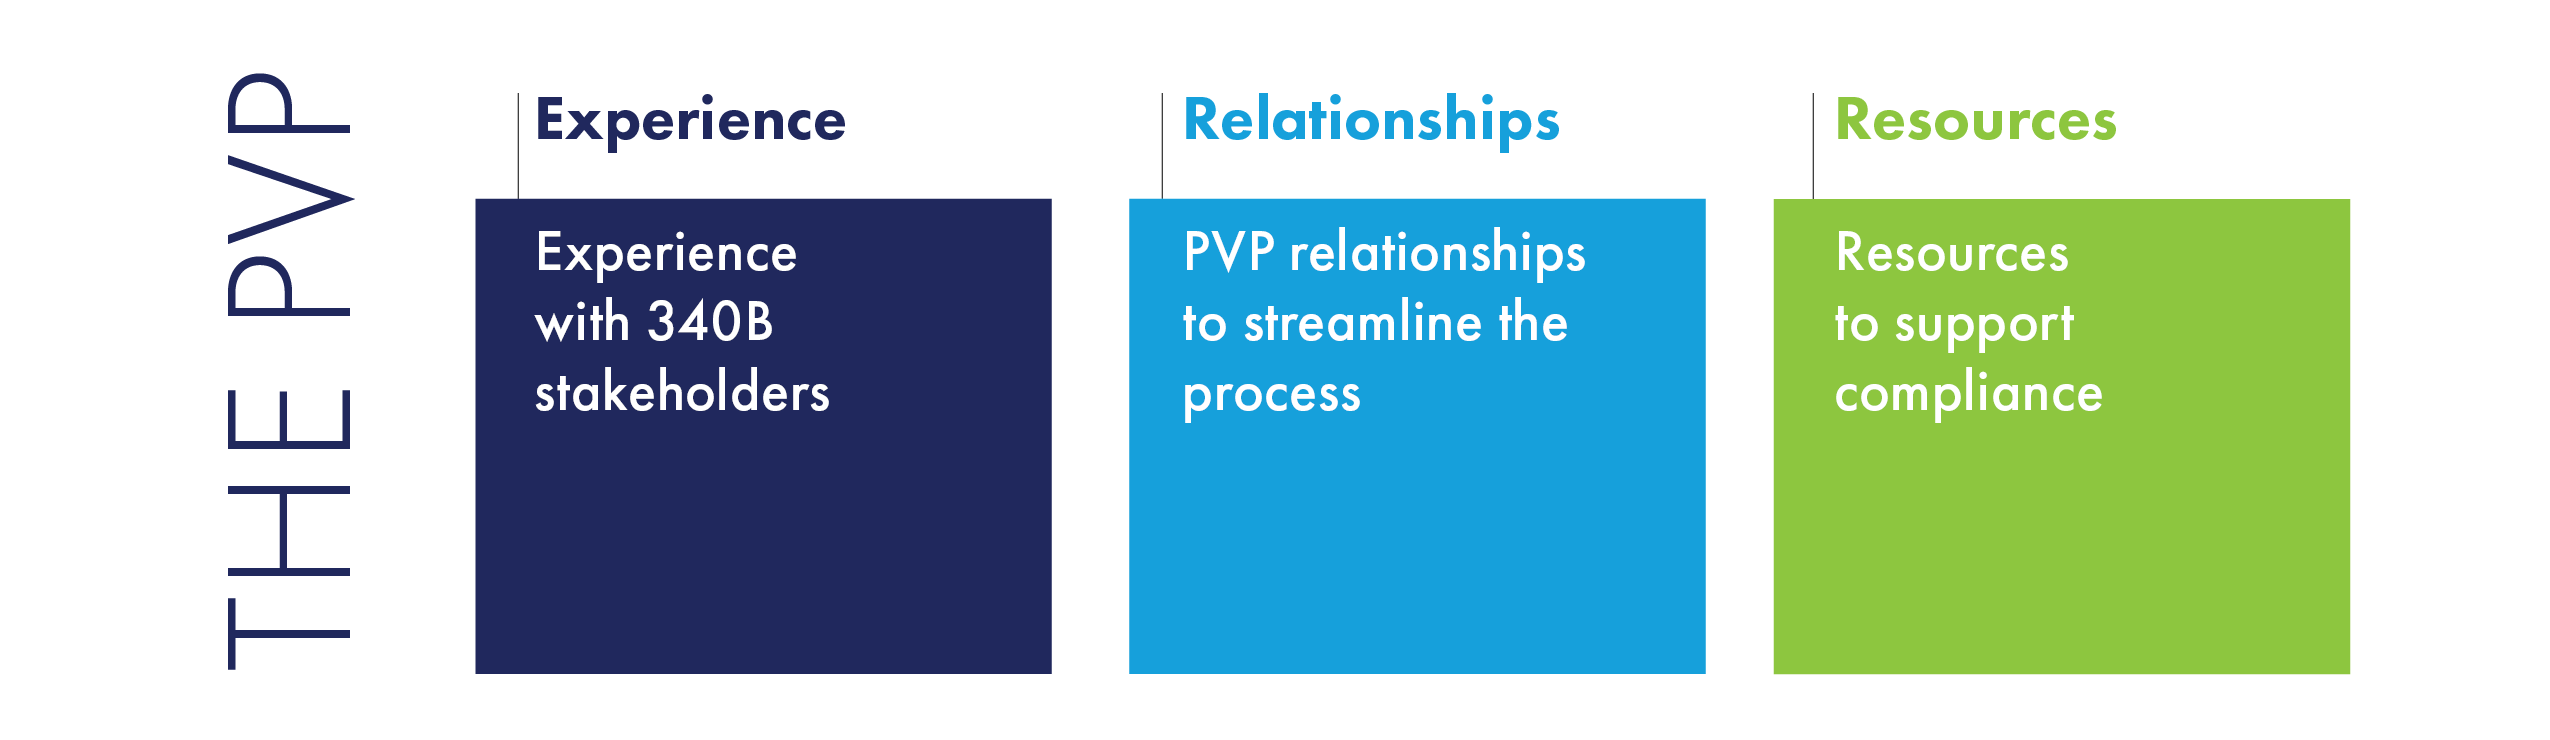 The 340B PVP Facilitates the Refund Process with Experience, Relationships, and Resources